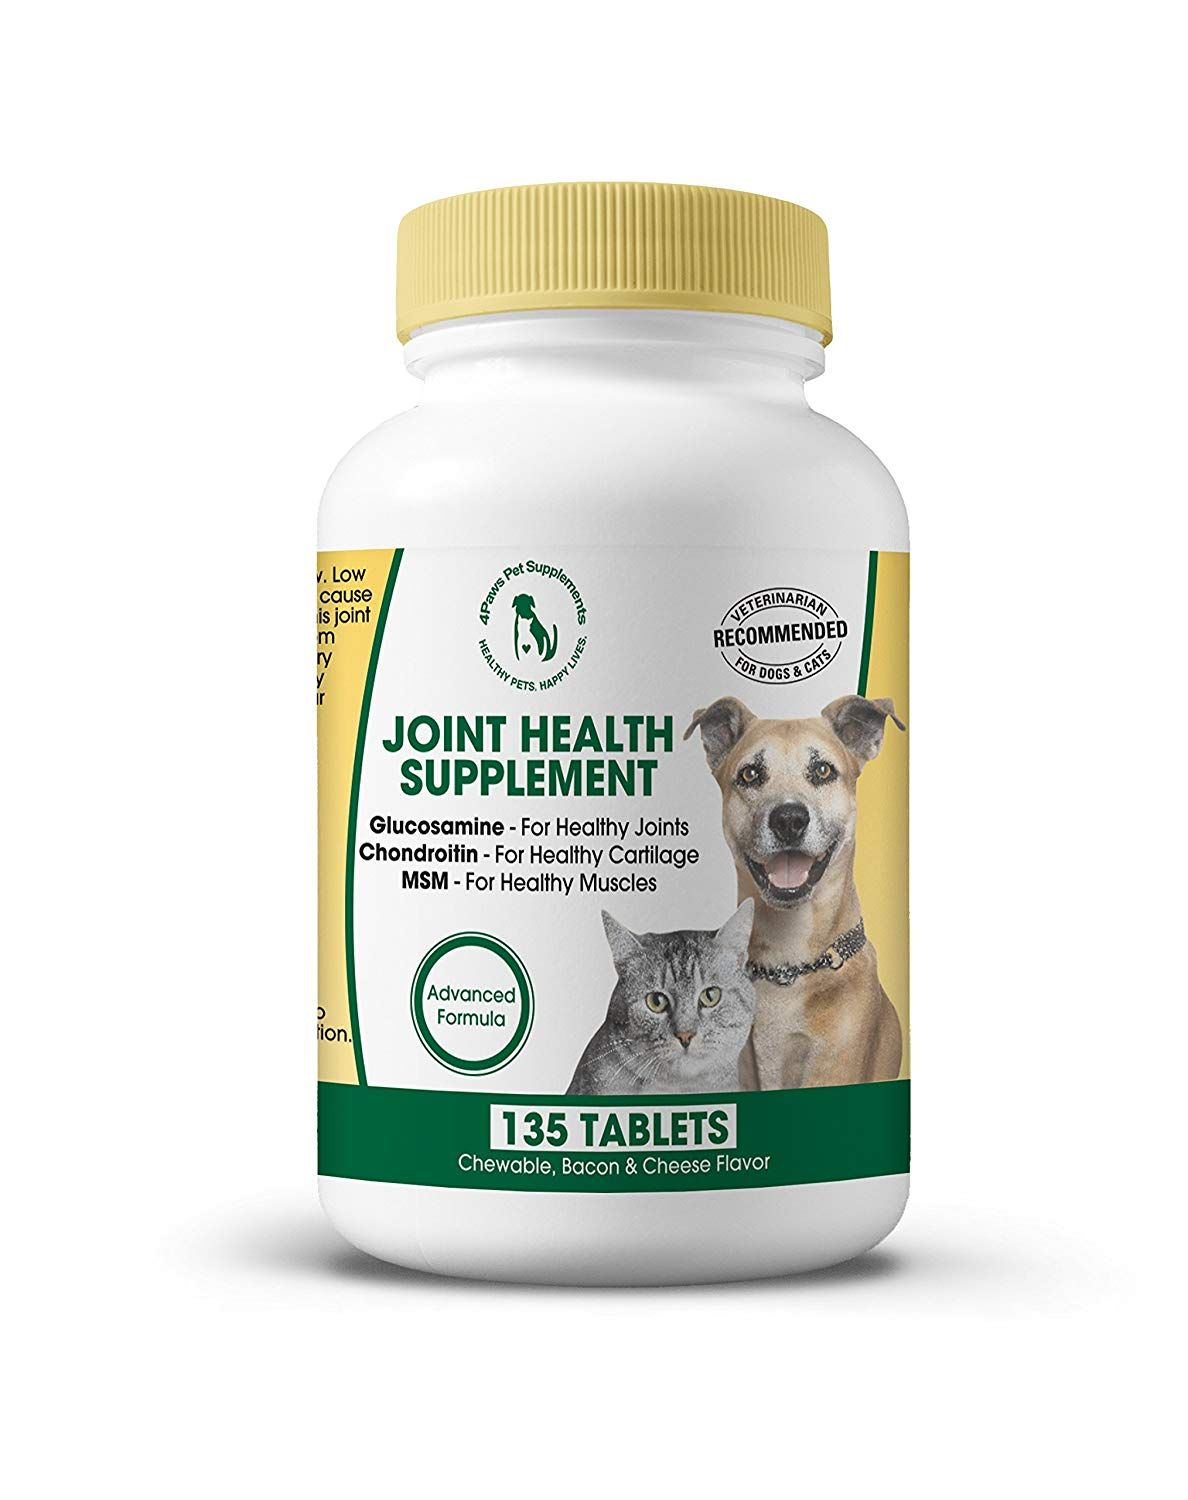 Best Glucosamine Chondroitin MSM for Dogs and Cats. All